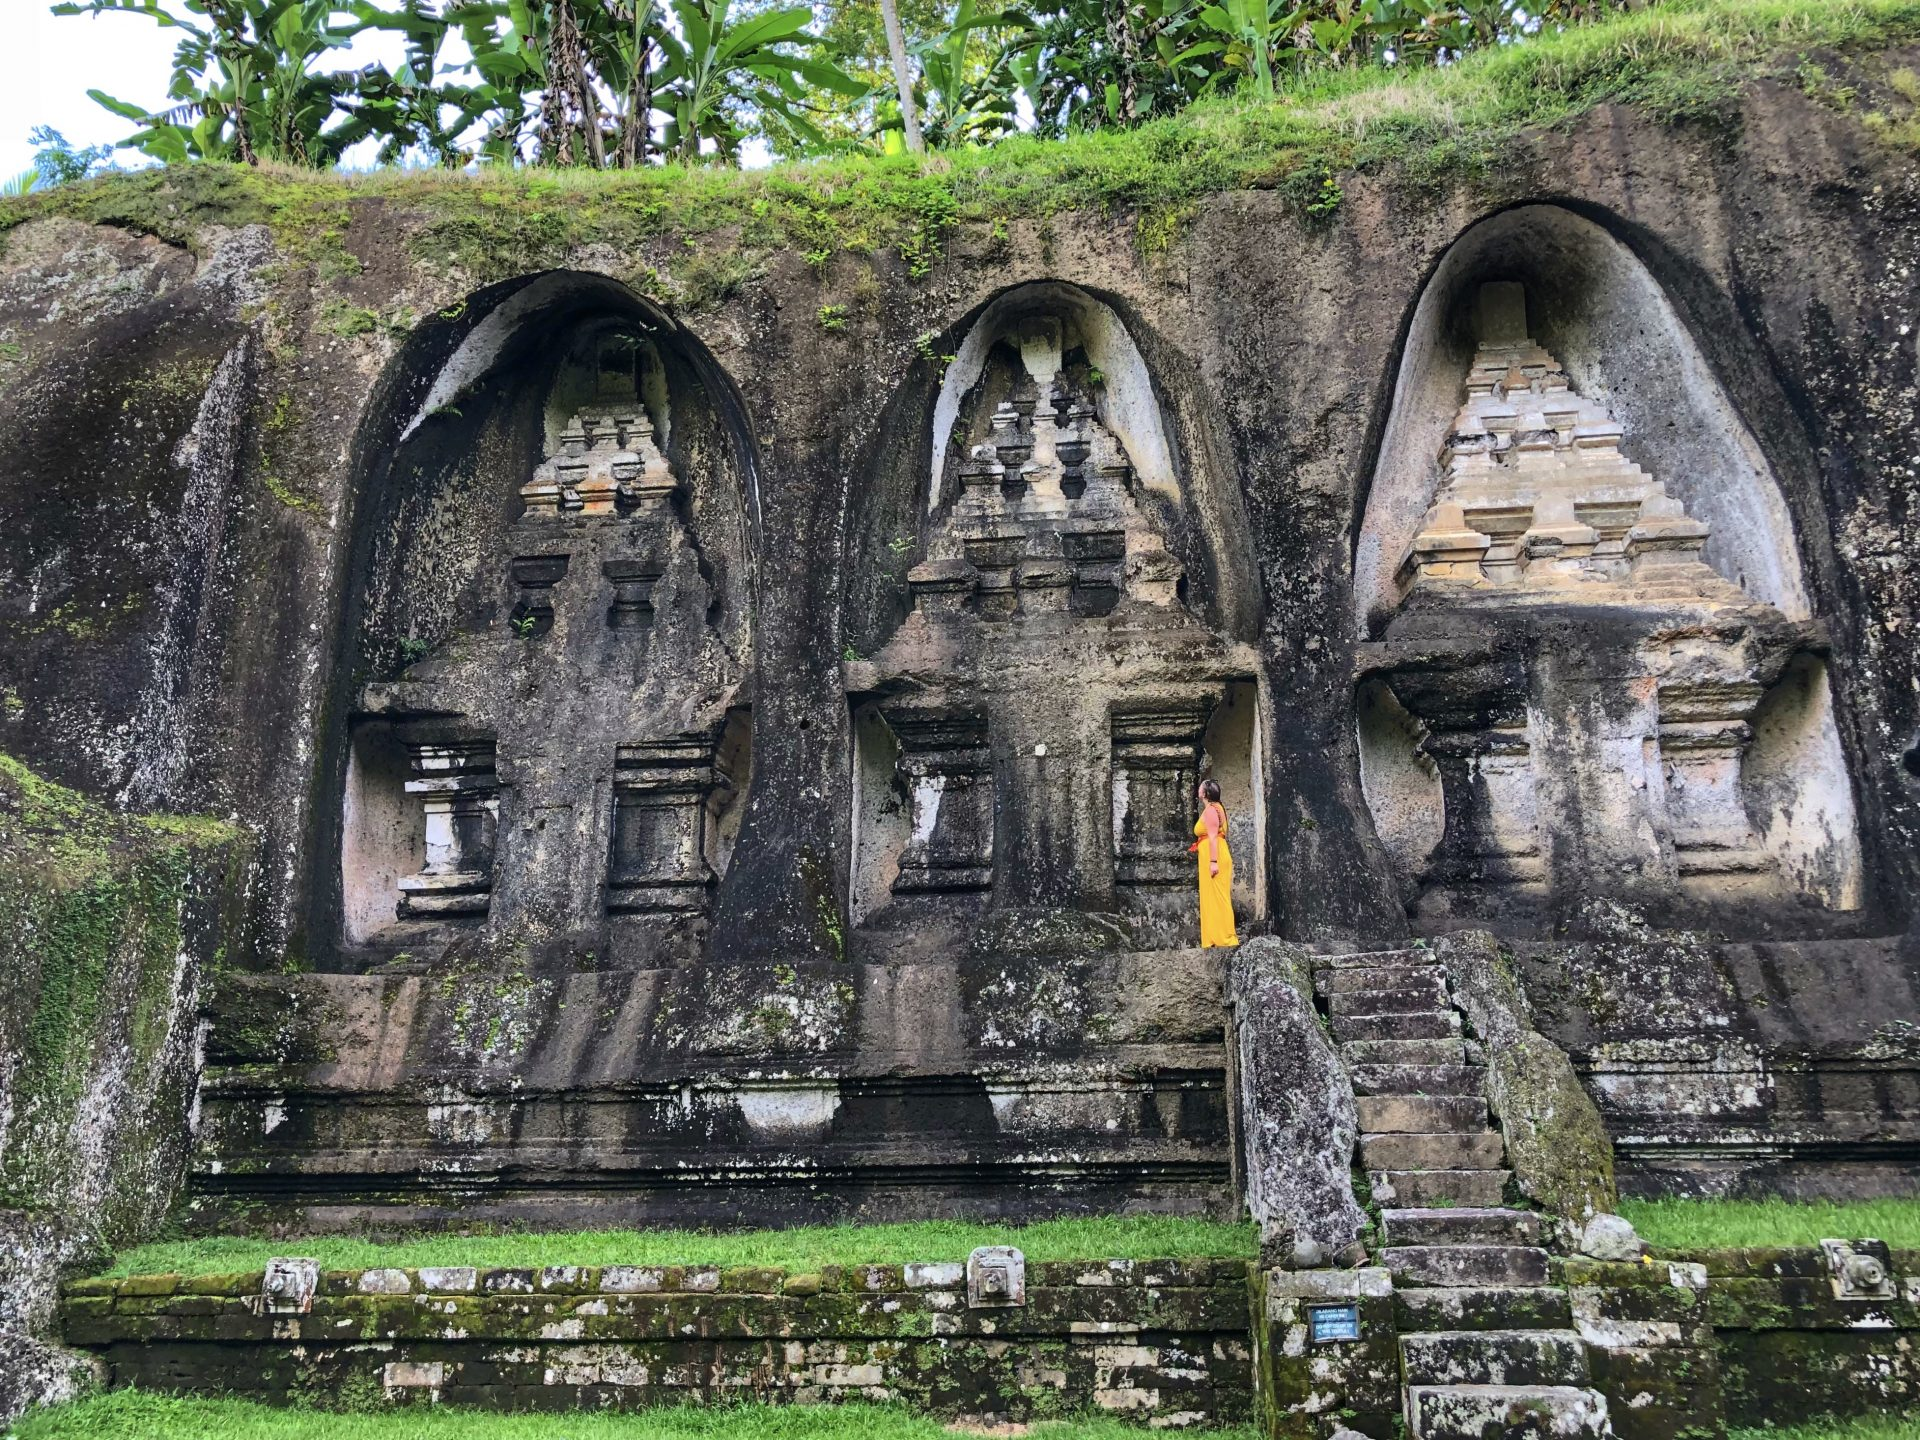 Kecak Cafe Gunung Kawi Temple Best Cafe in Ubud Restaurant Wurang Hidden Gem Bali